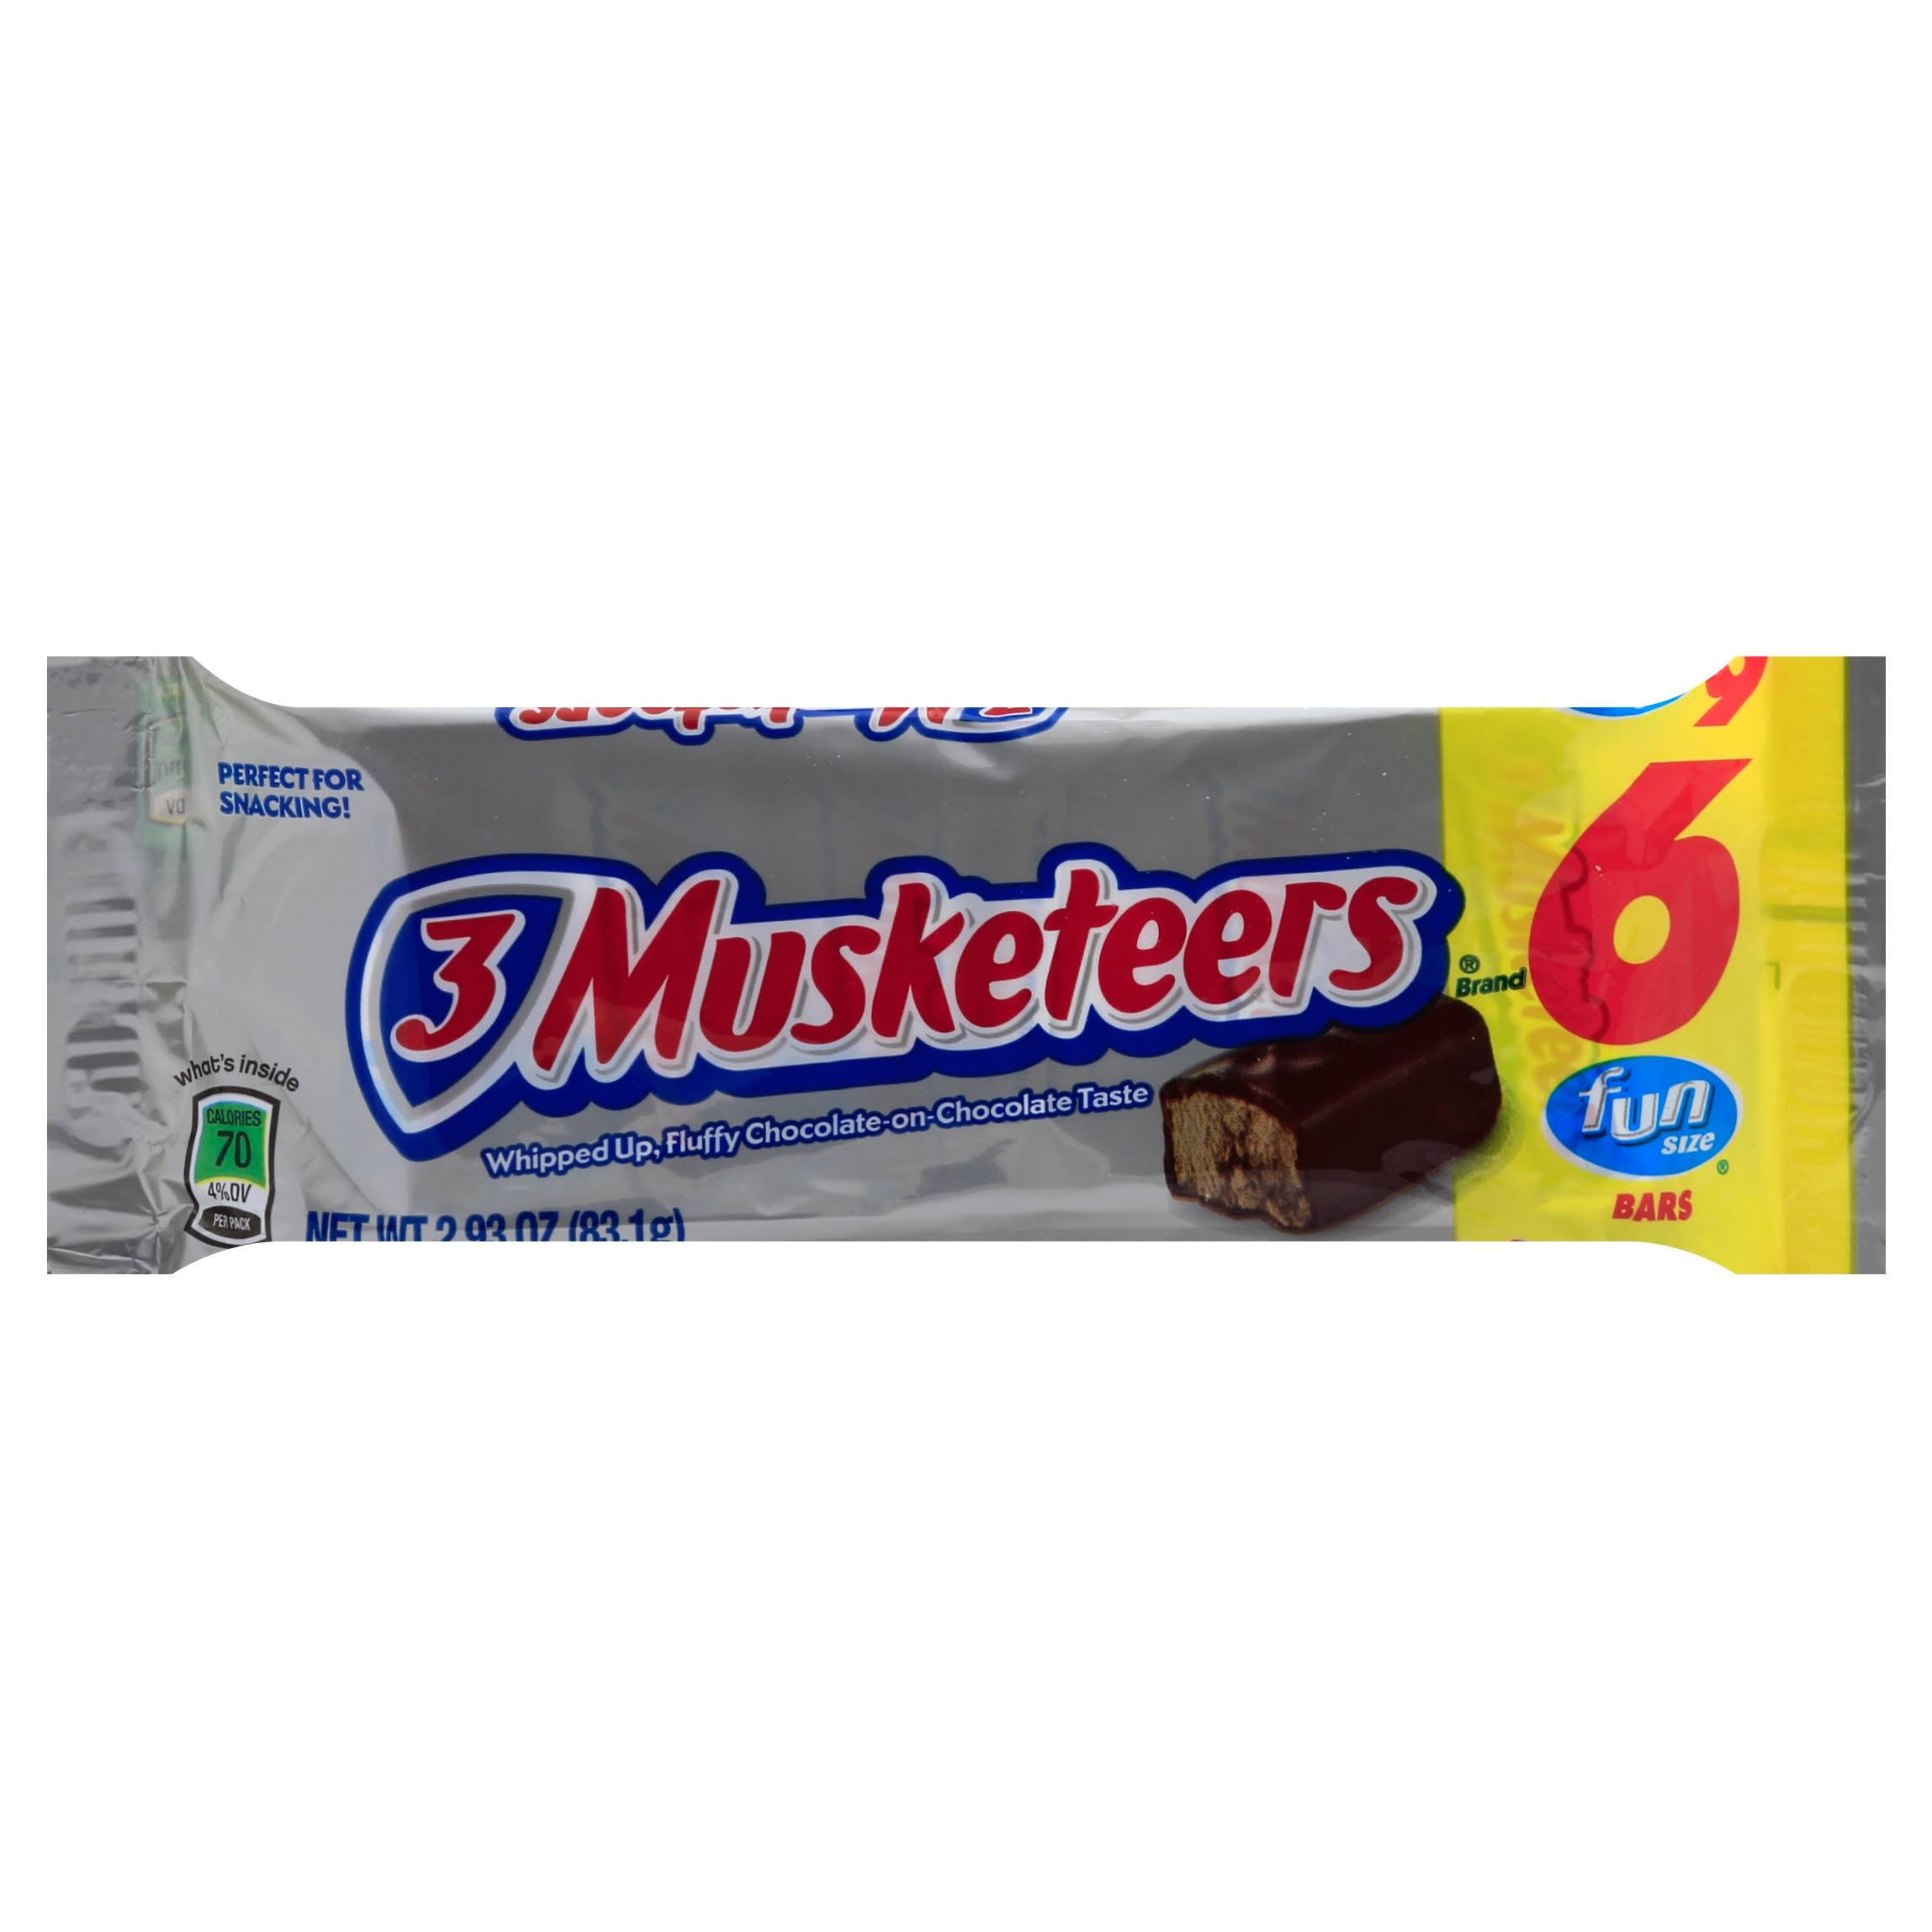 3 Musketeers Chocolate Candy Bar - Fun Size, 6pk